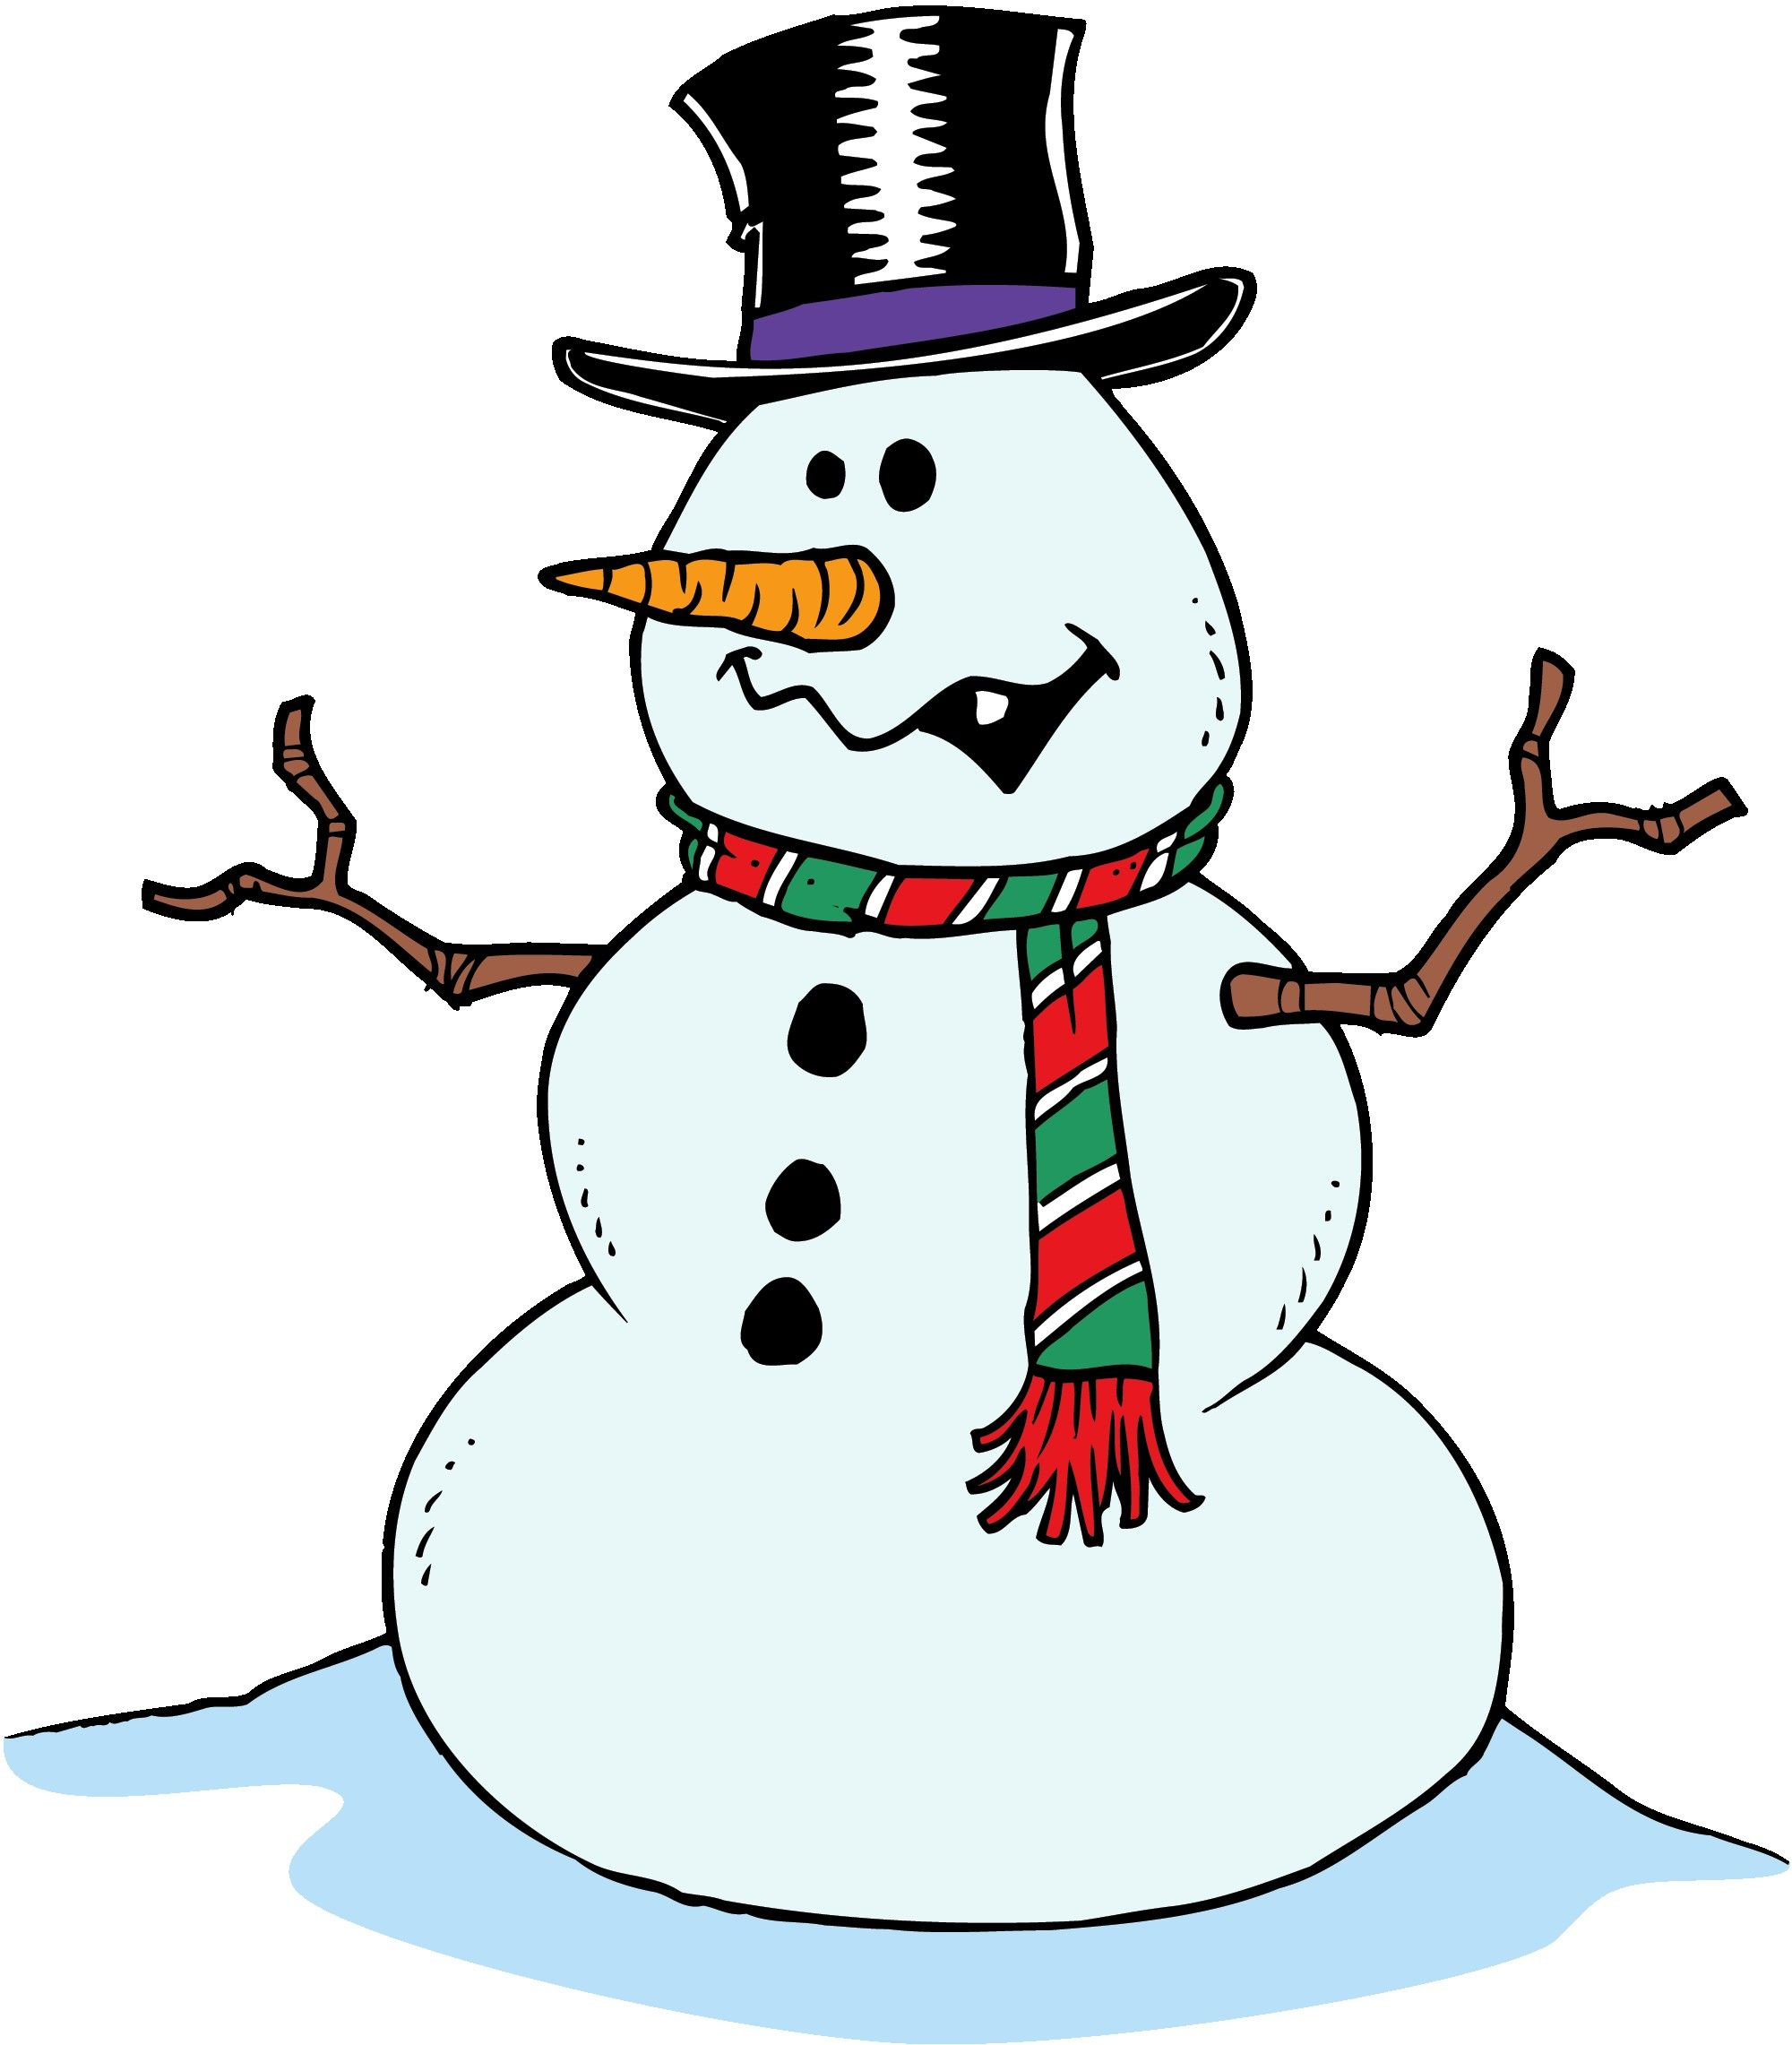 Winter clipart. Best cliparts for you